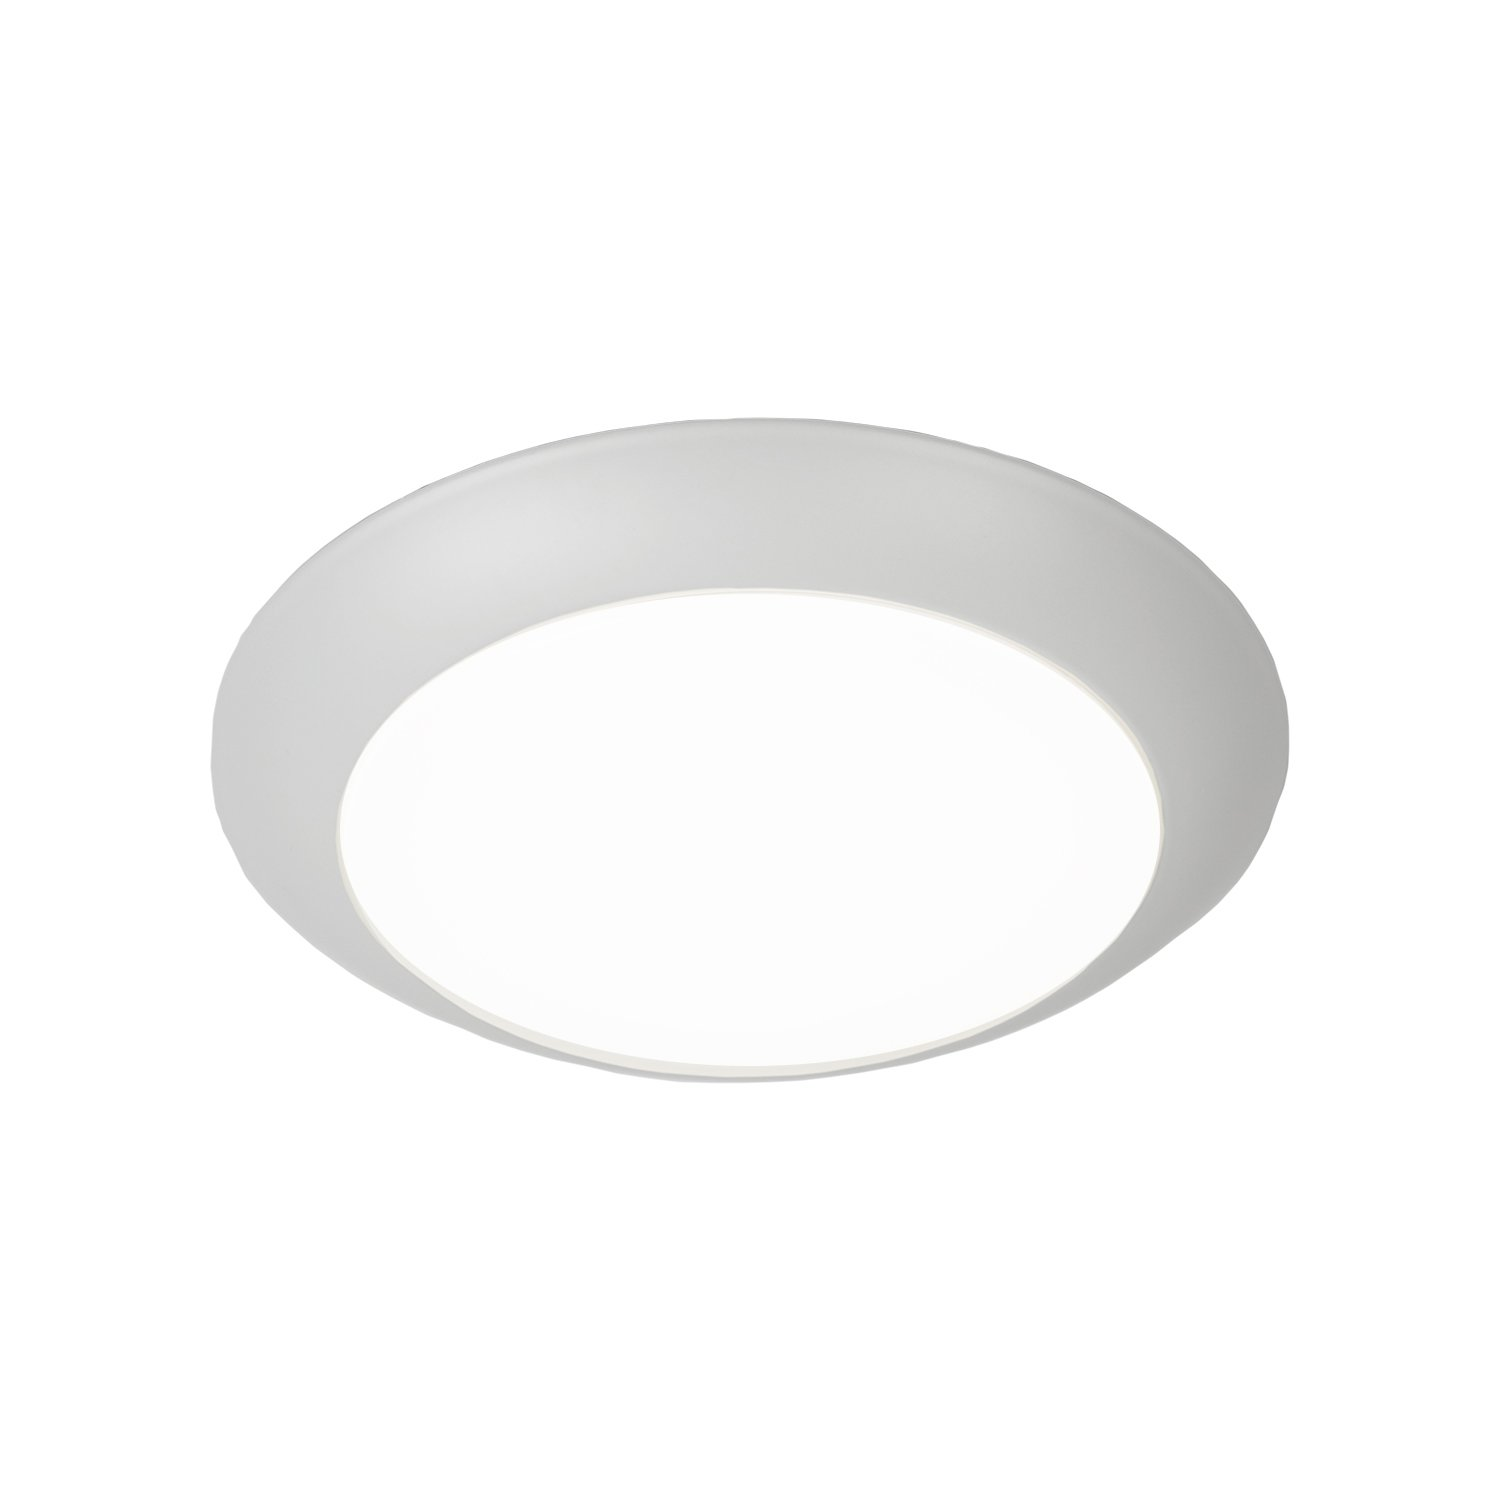 light torchstar inch dimmable mount flush mounted ceiling file led moreview lightbox